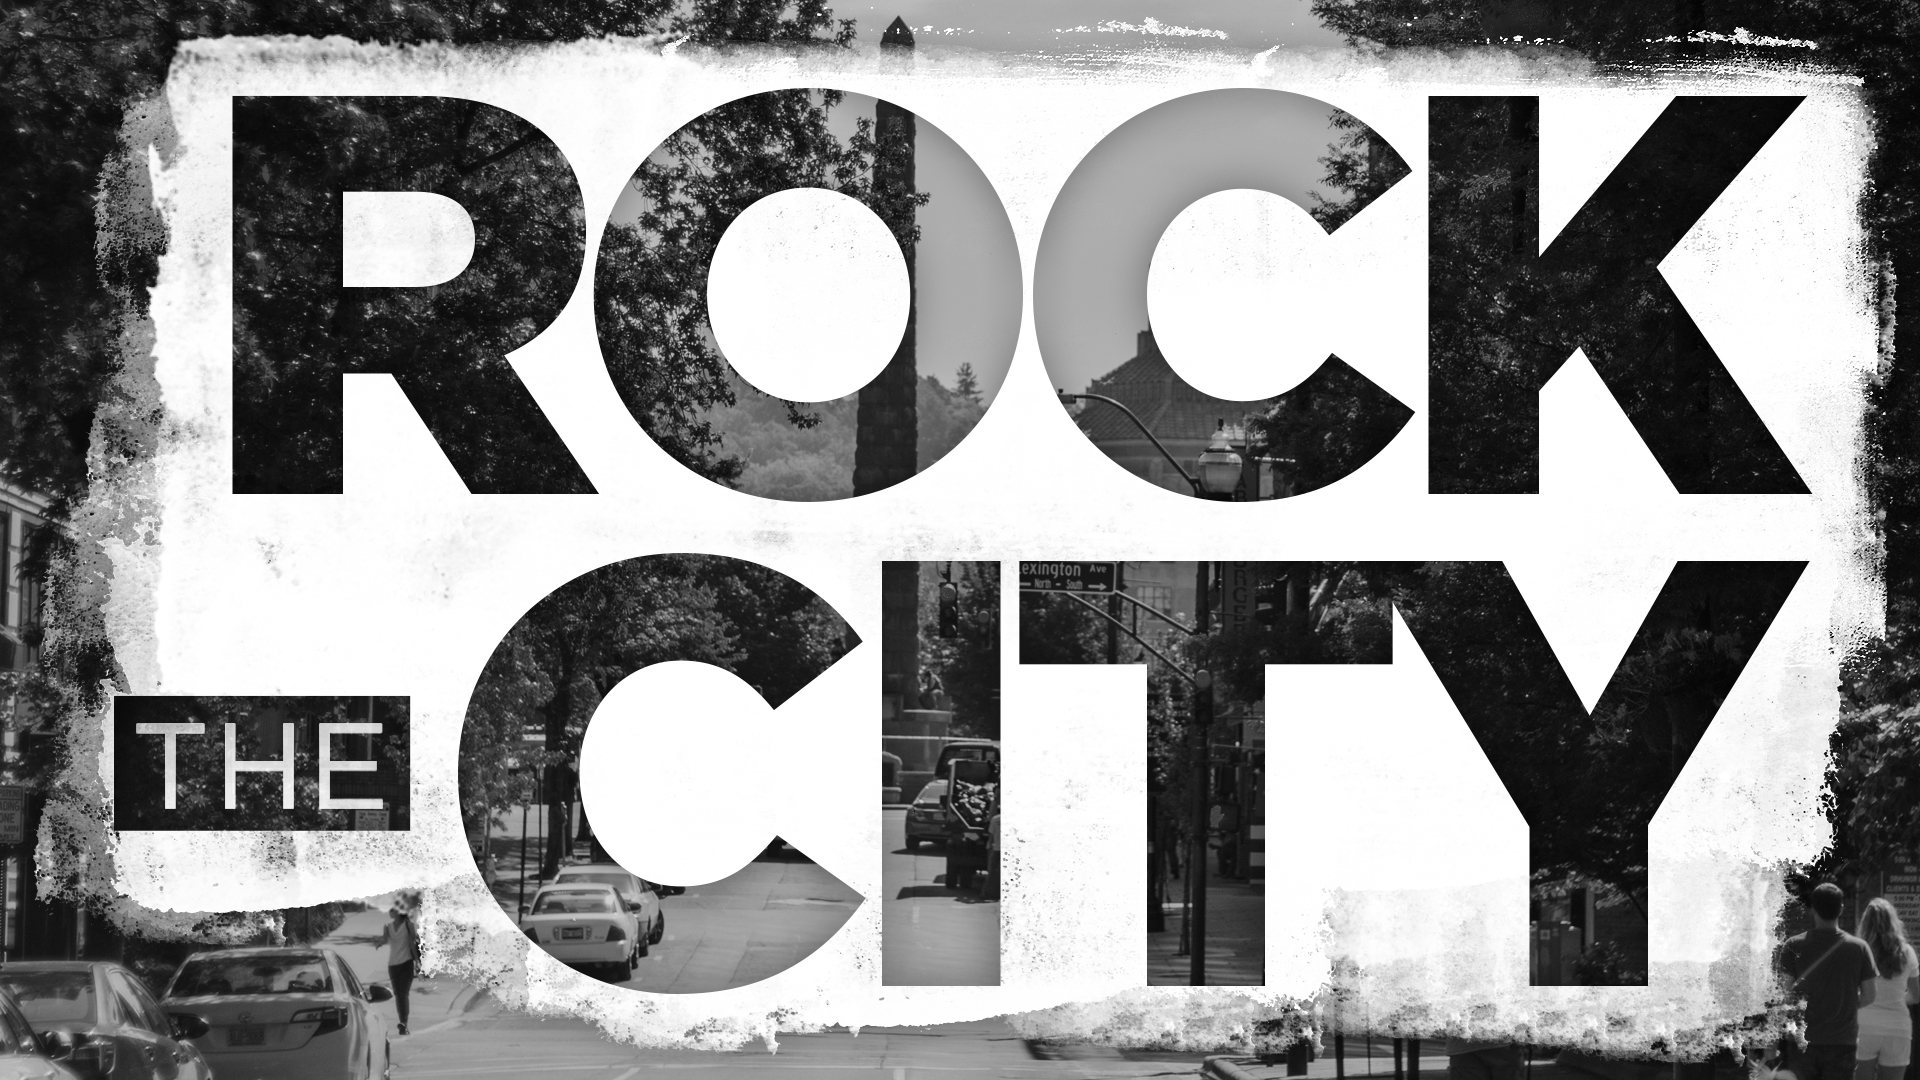 Rock the City Street View 2 copy image